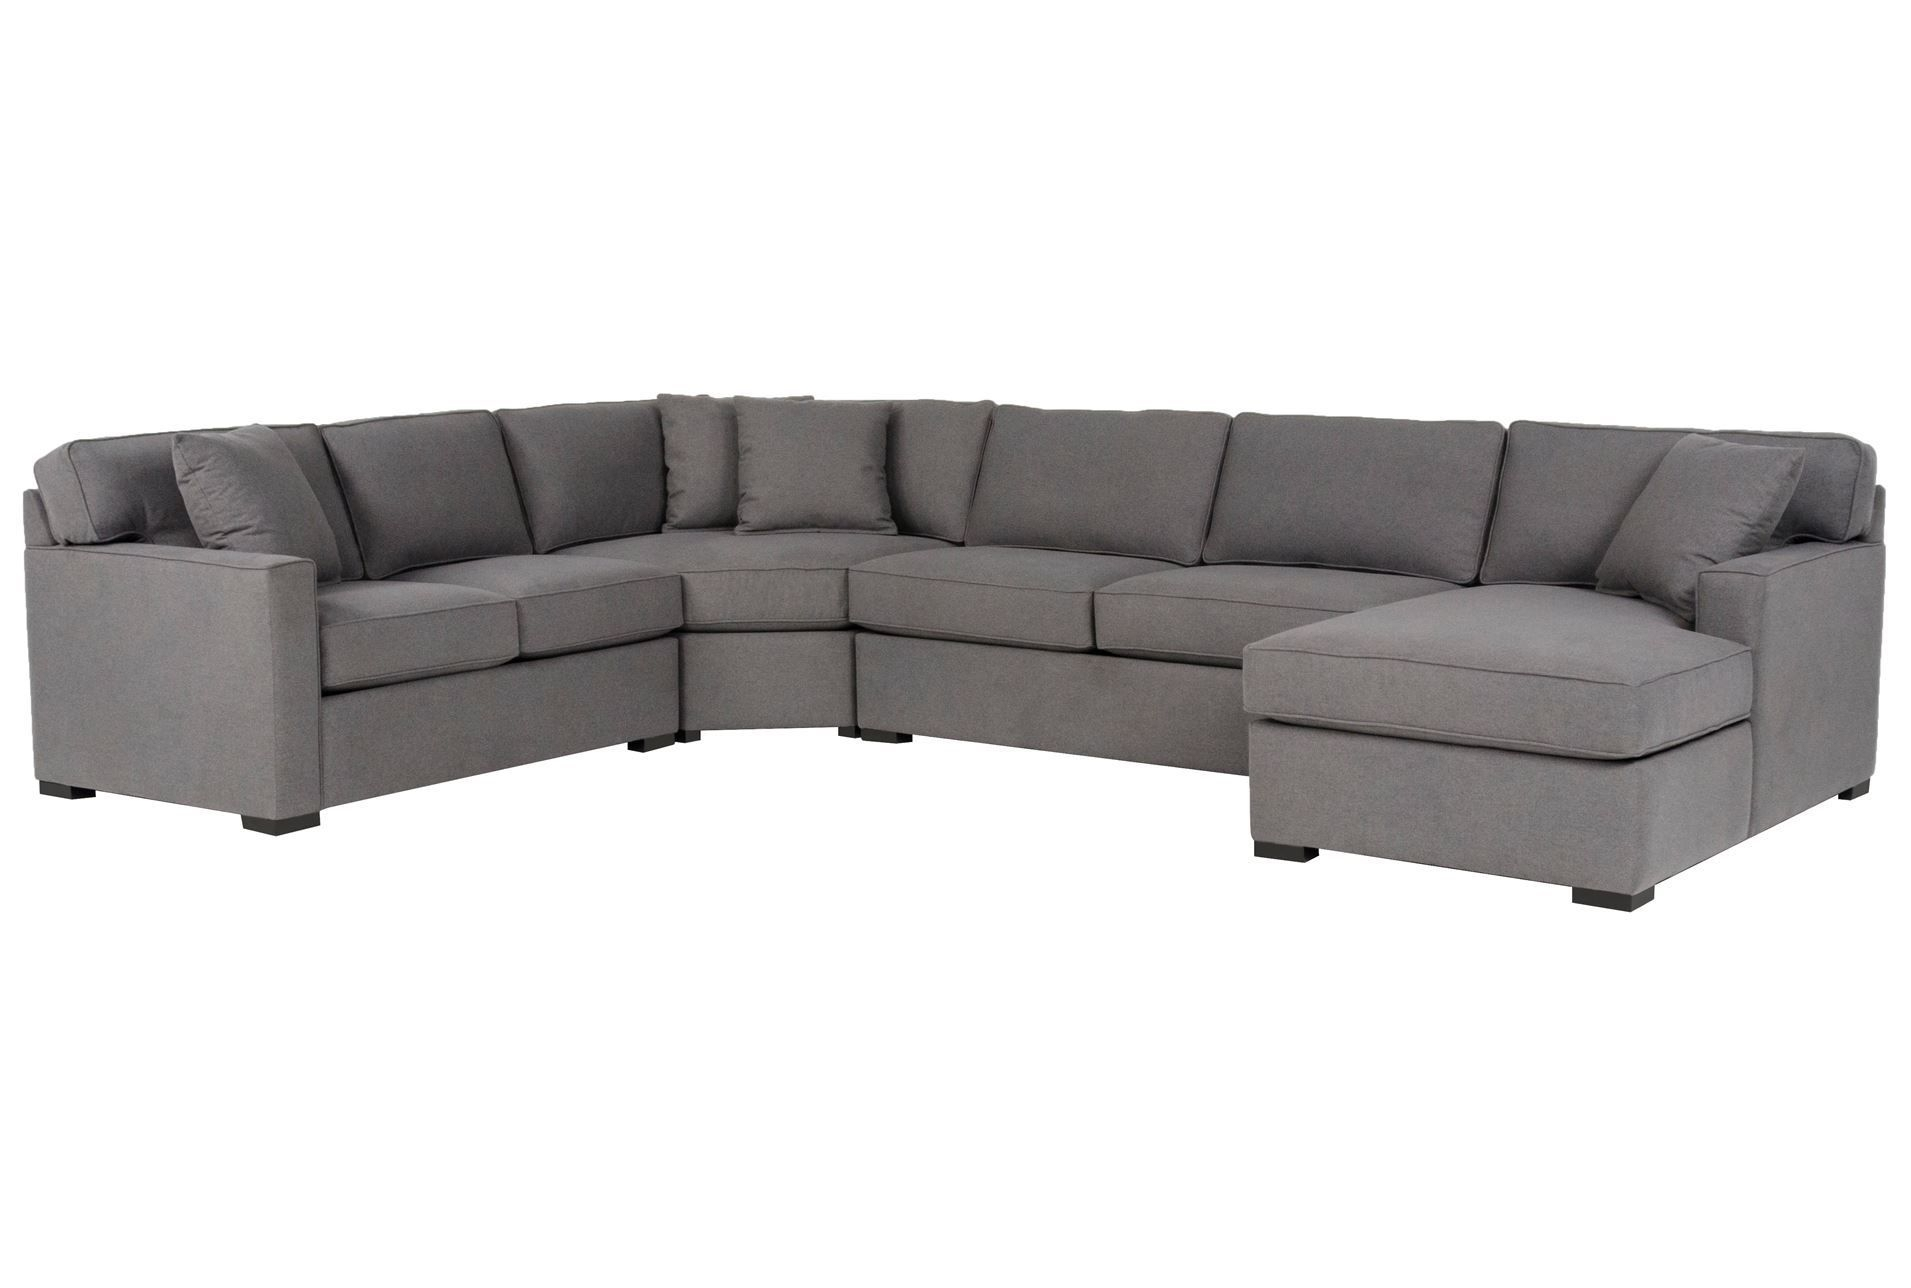 Alder 4 Piece Sectional | Dream Home - Sit Down | Pinterest | Living in Turdur 3 Piece Sectionals With Raf Loveseat (Image 1 of 30)